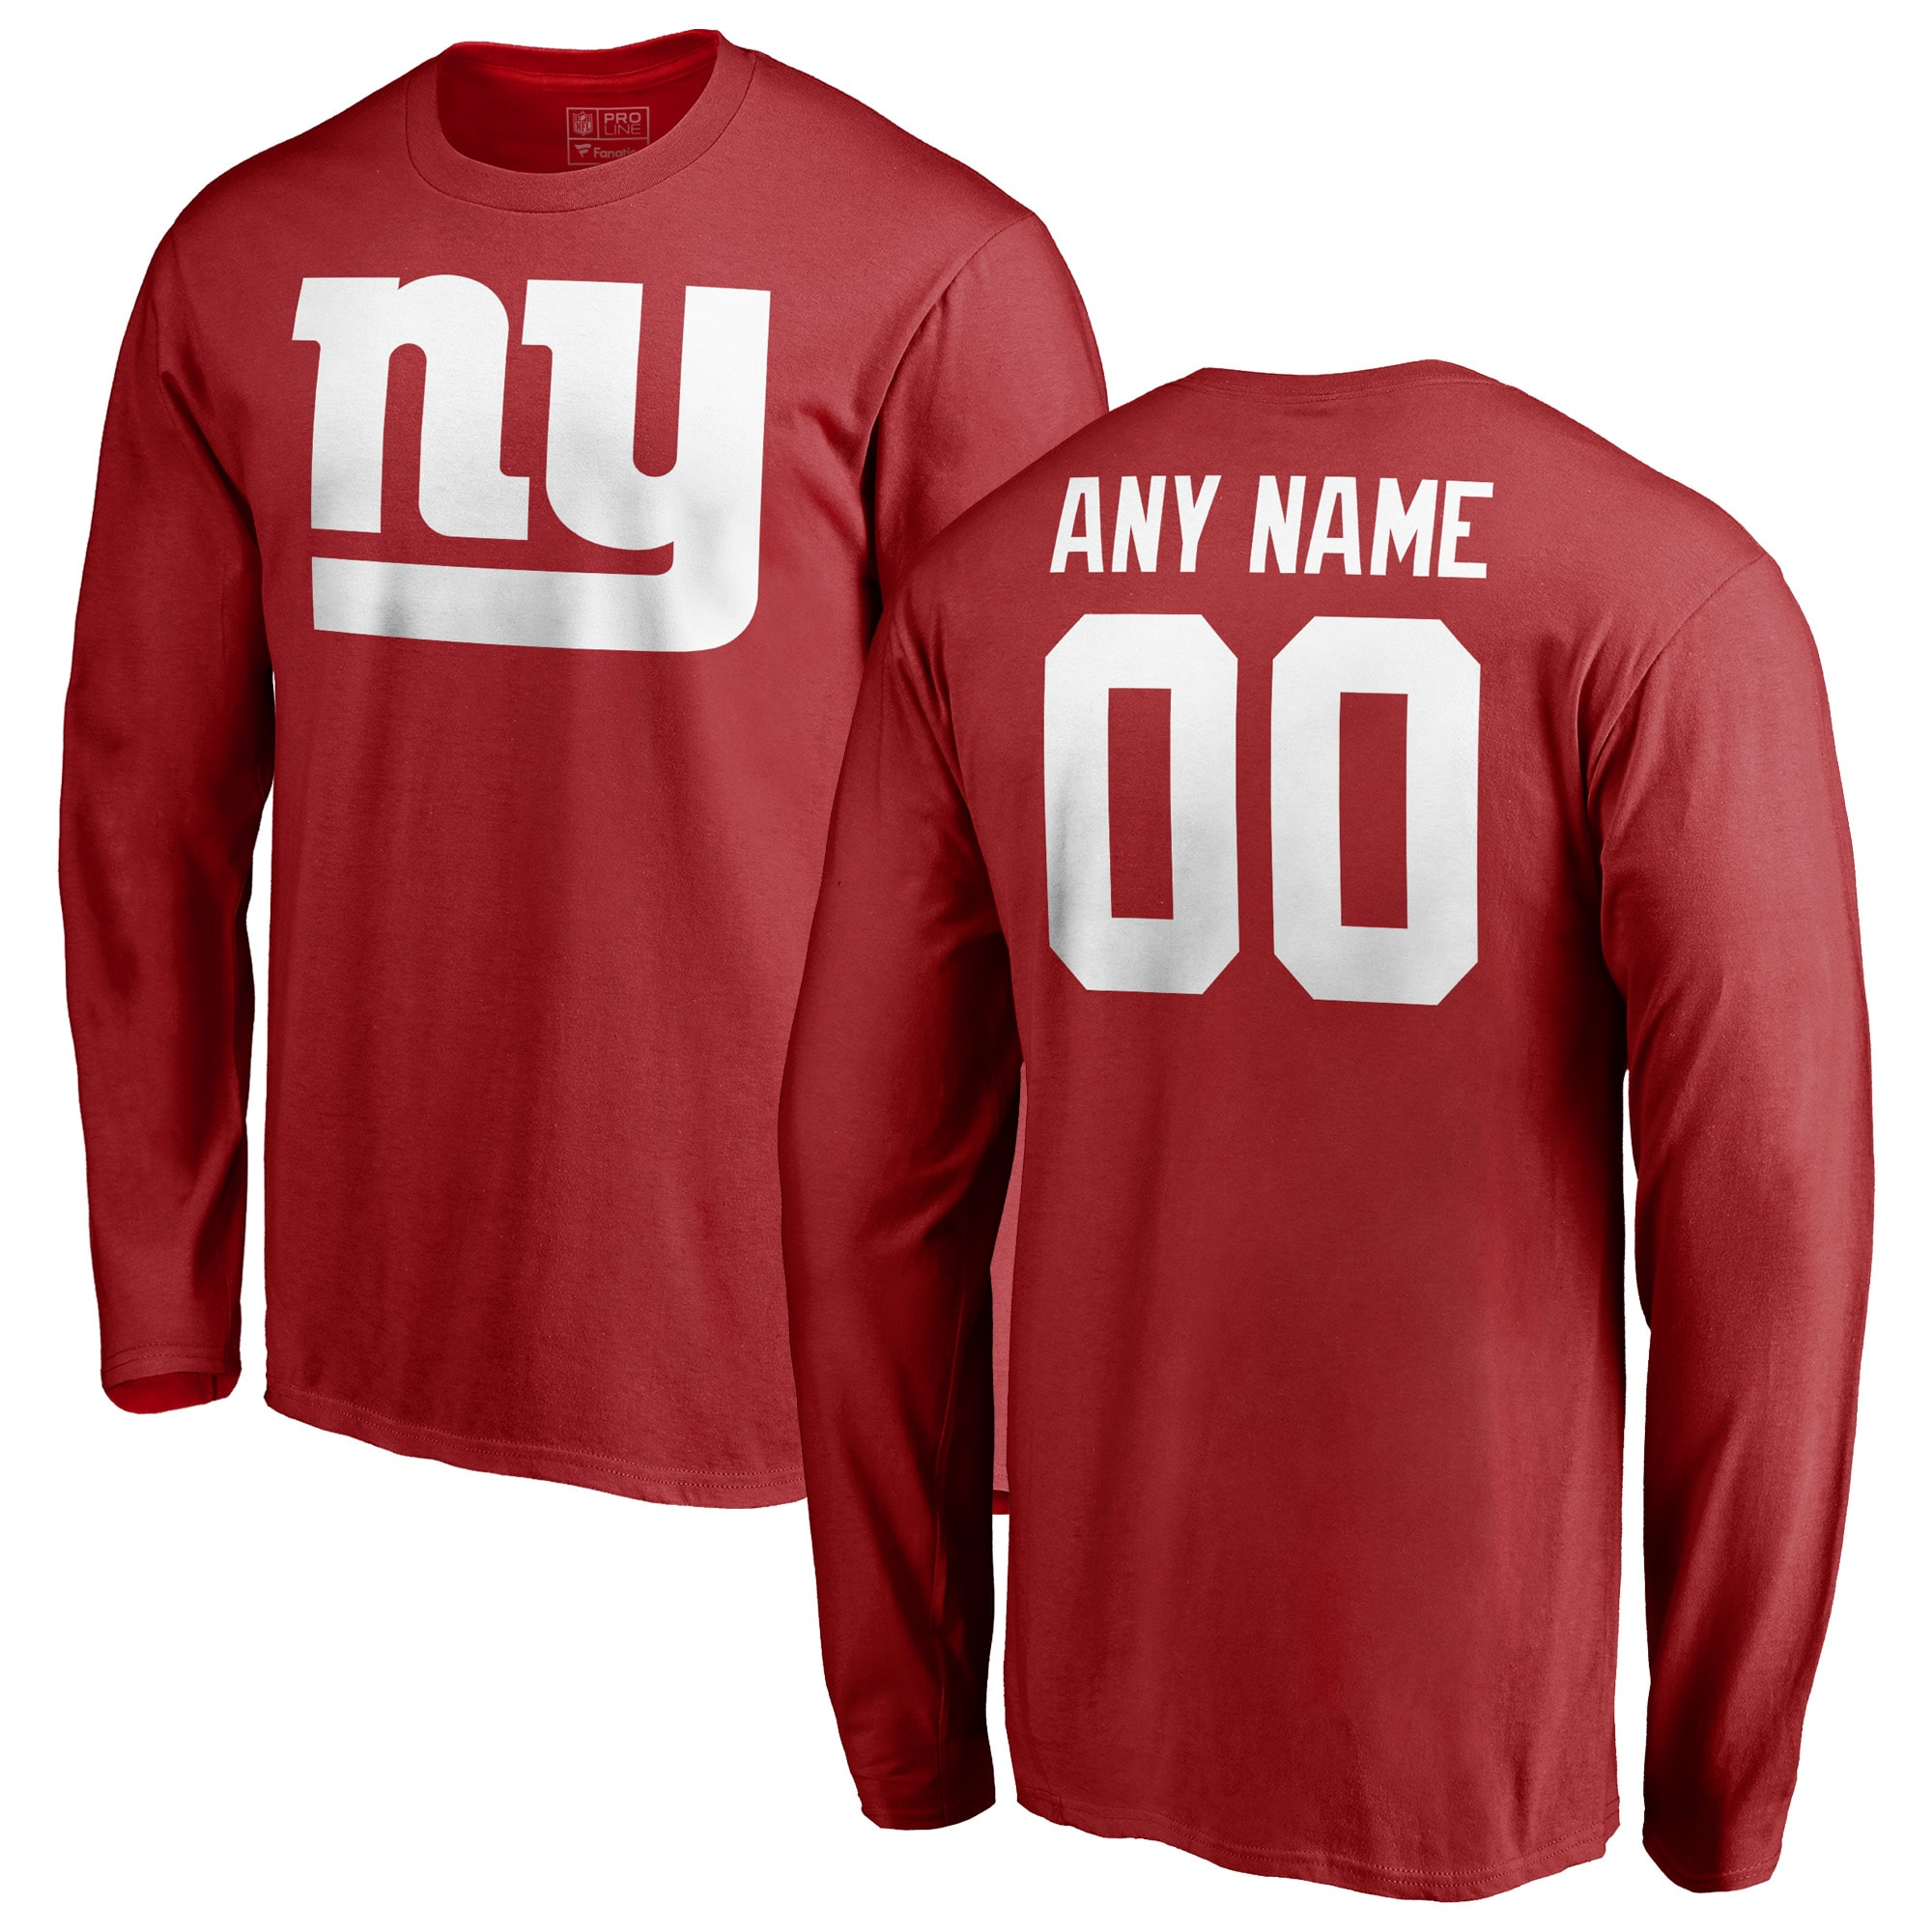 New York Giants NFL Pro Line Personalized Name & Number Logo Long Sleeve T-Shirt - Red